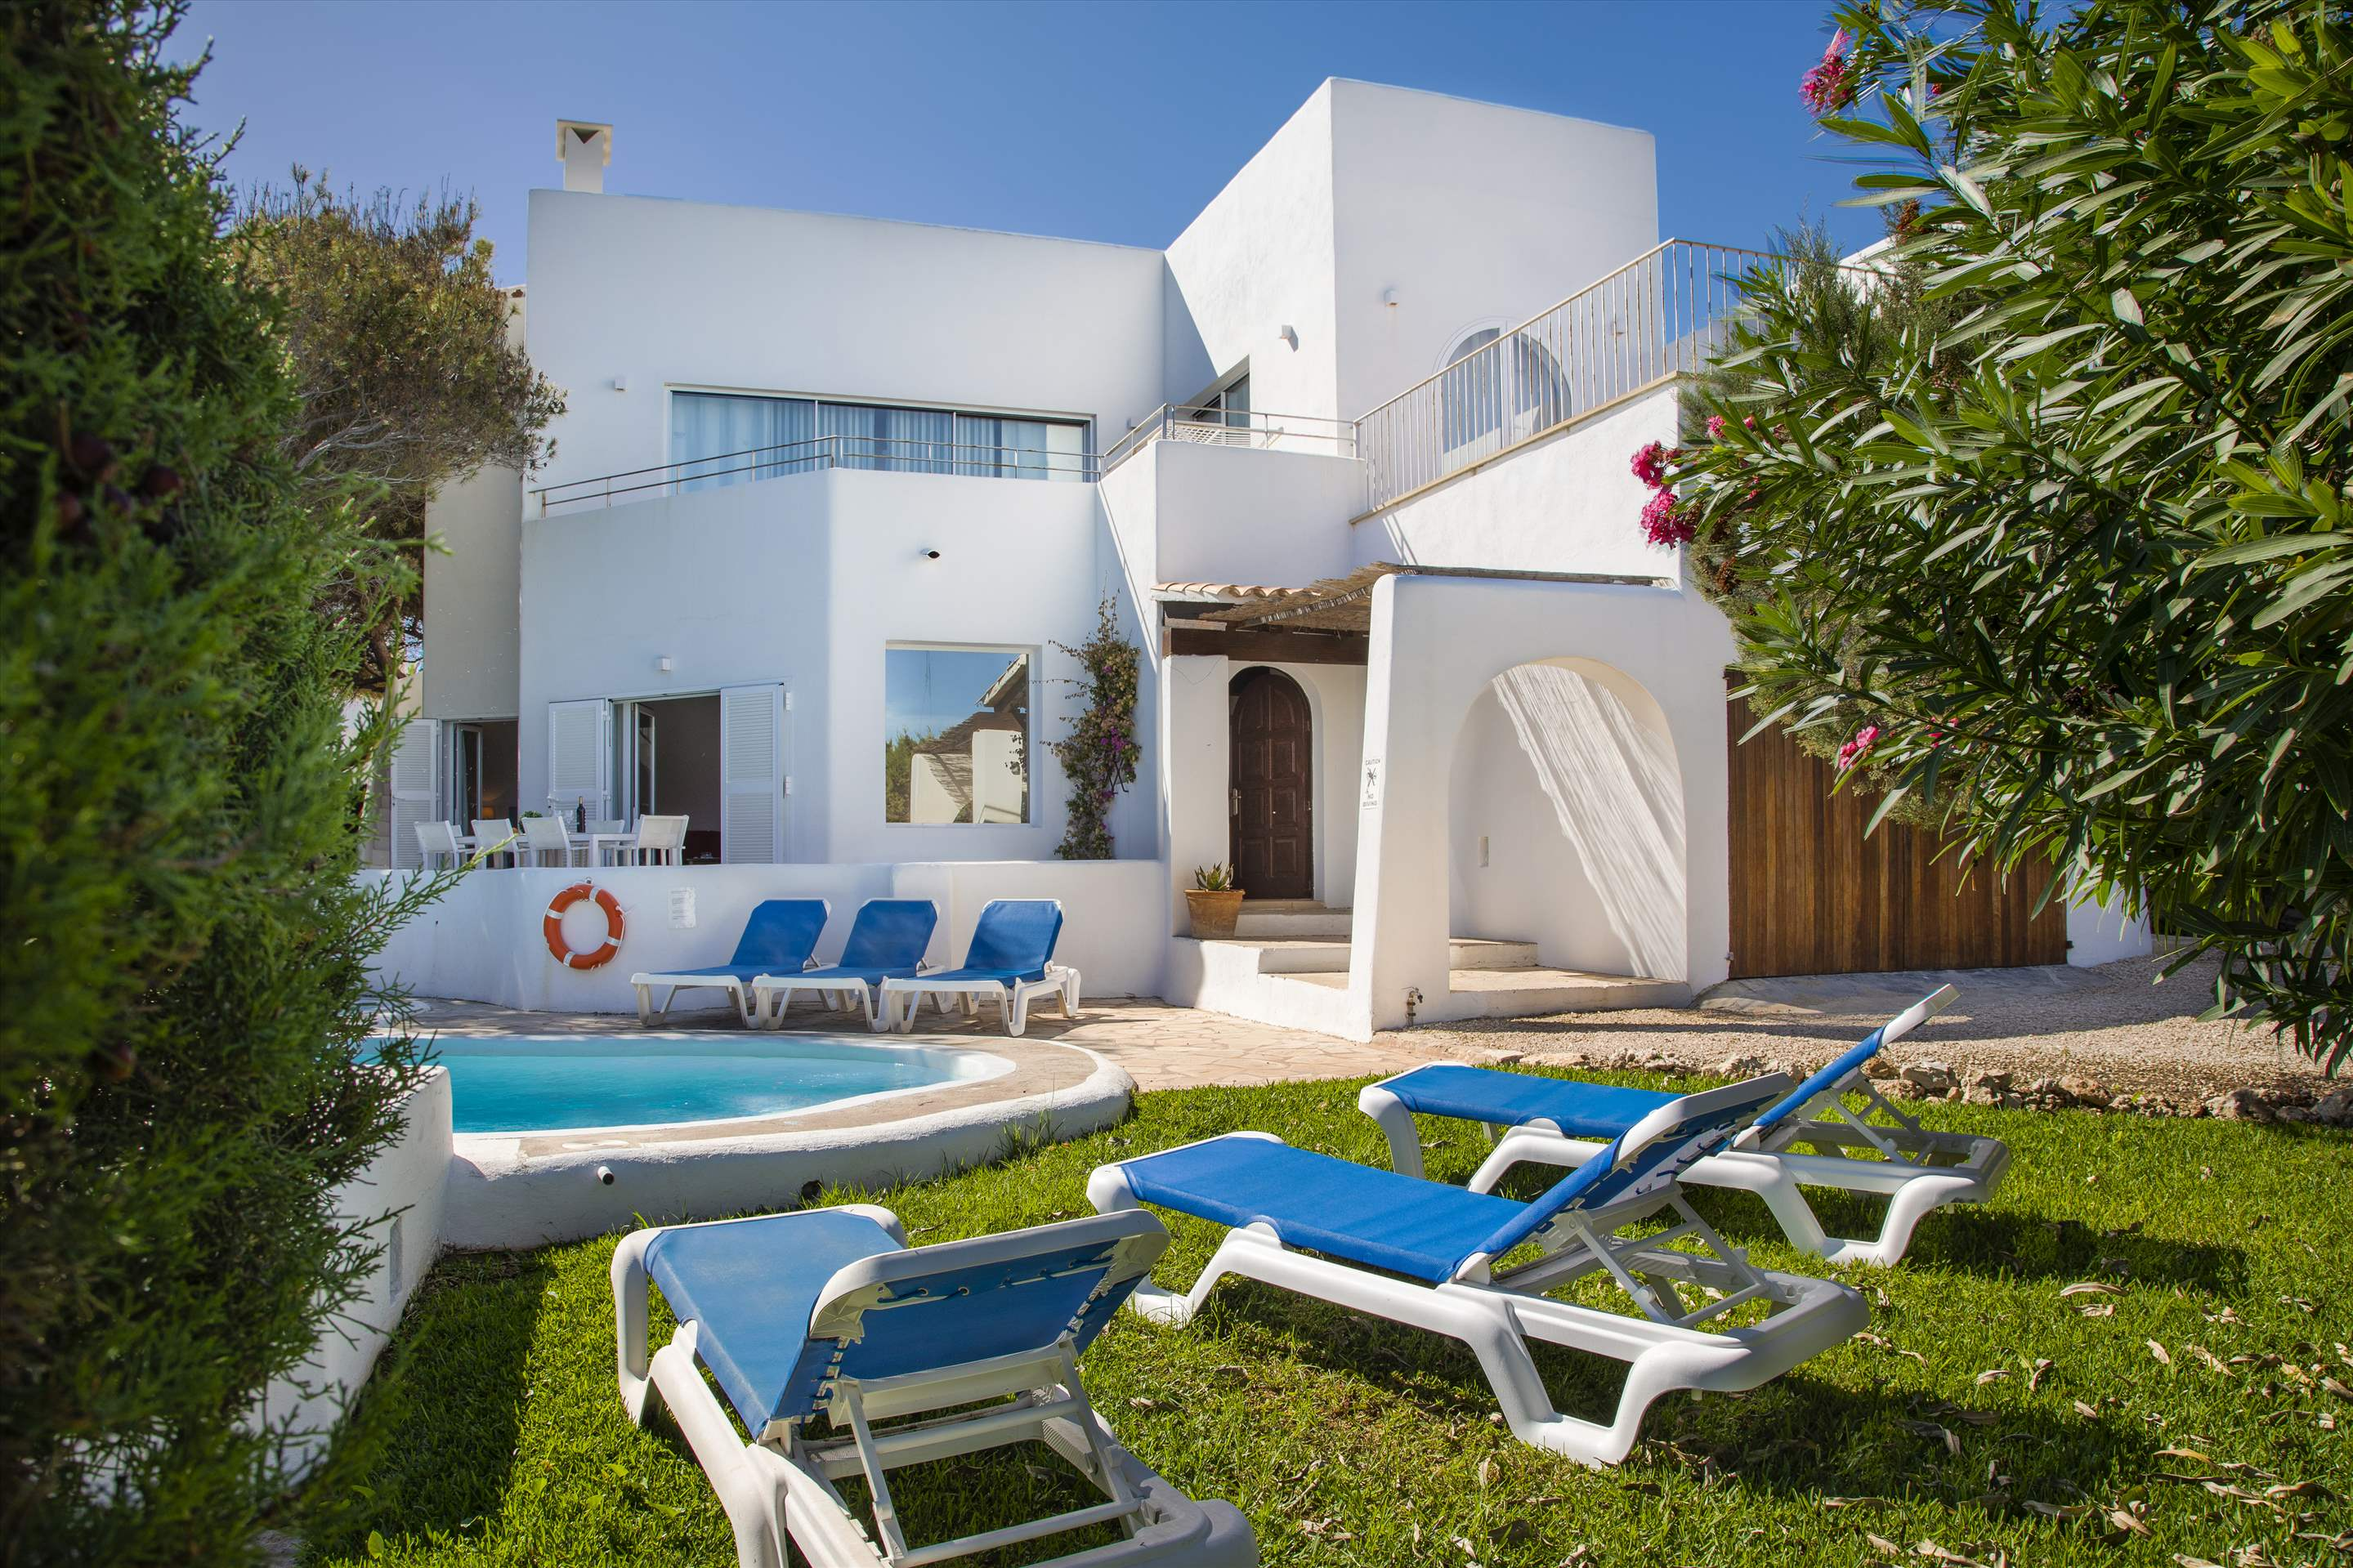 Mar Gran, 4 bedroom villa in Cala d'Or , Majorca